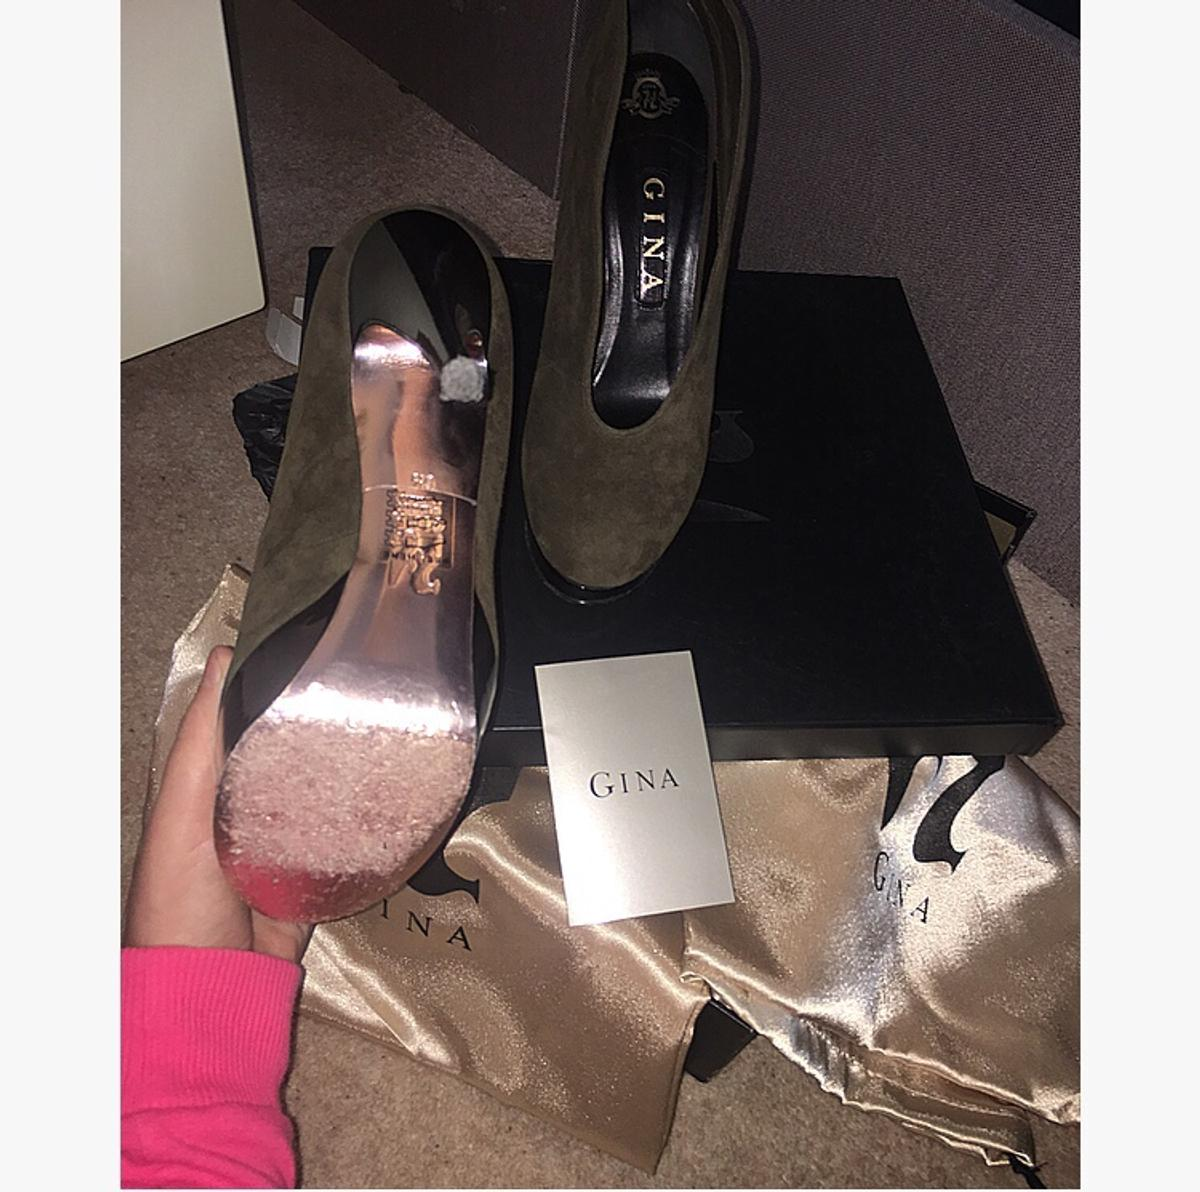 Gina boots genuine only wore once for a couple of hours like bran new size uk 6 comes with box and dust bags and Gina paper will post